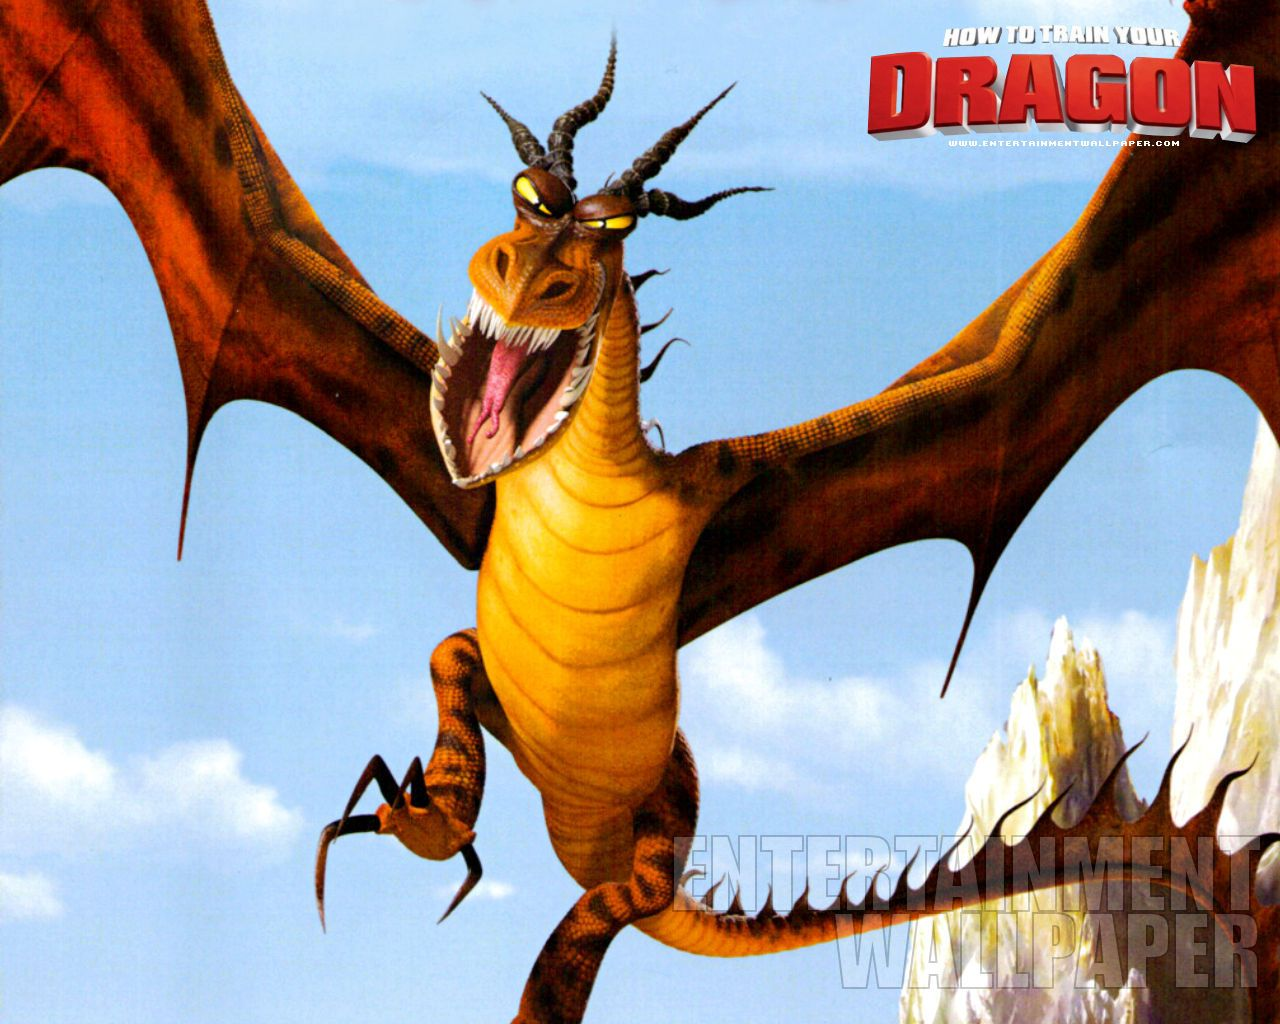 How to train your dragon wallpaper 10020951 1280x1024 how to train your dragon wallpaper 10020951 1280x1024 ccuart Choice Image